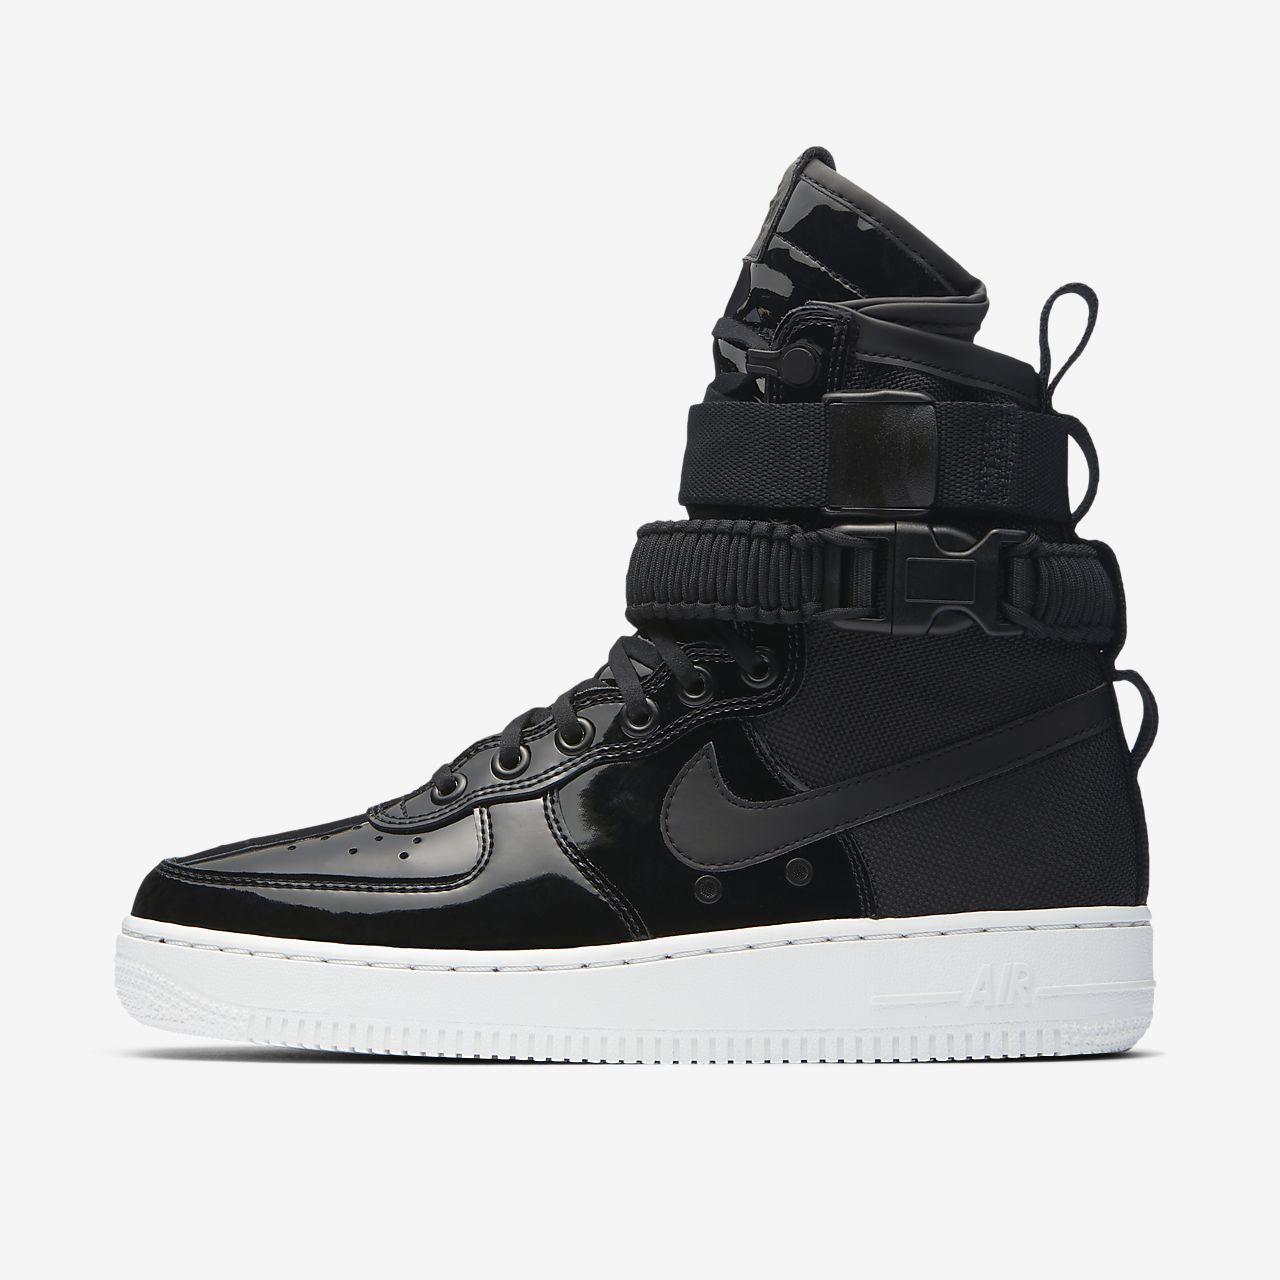 nike air force 1 high perf in white and black nz